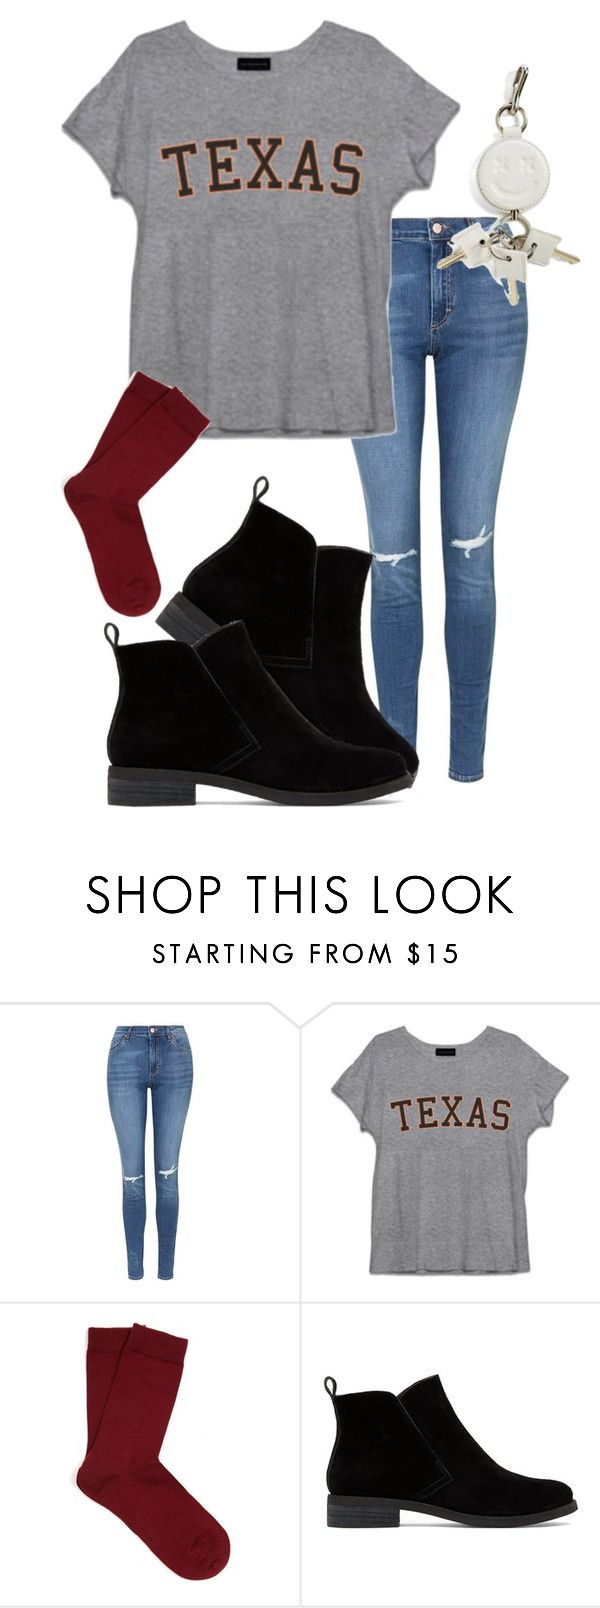 """Untitled #284"" by alyssadesgrange ❤ liked on Polyvore featuring Topshop, Falke, Lucky Brand and Alexander Wang"